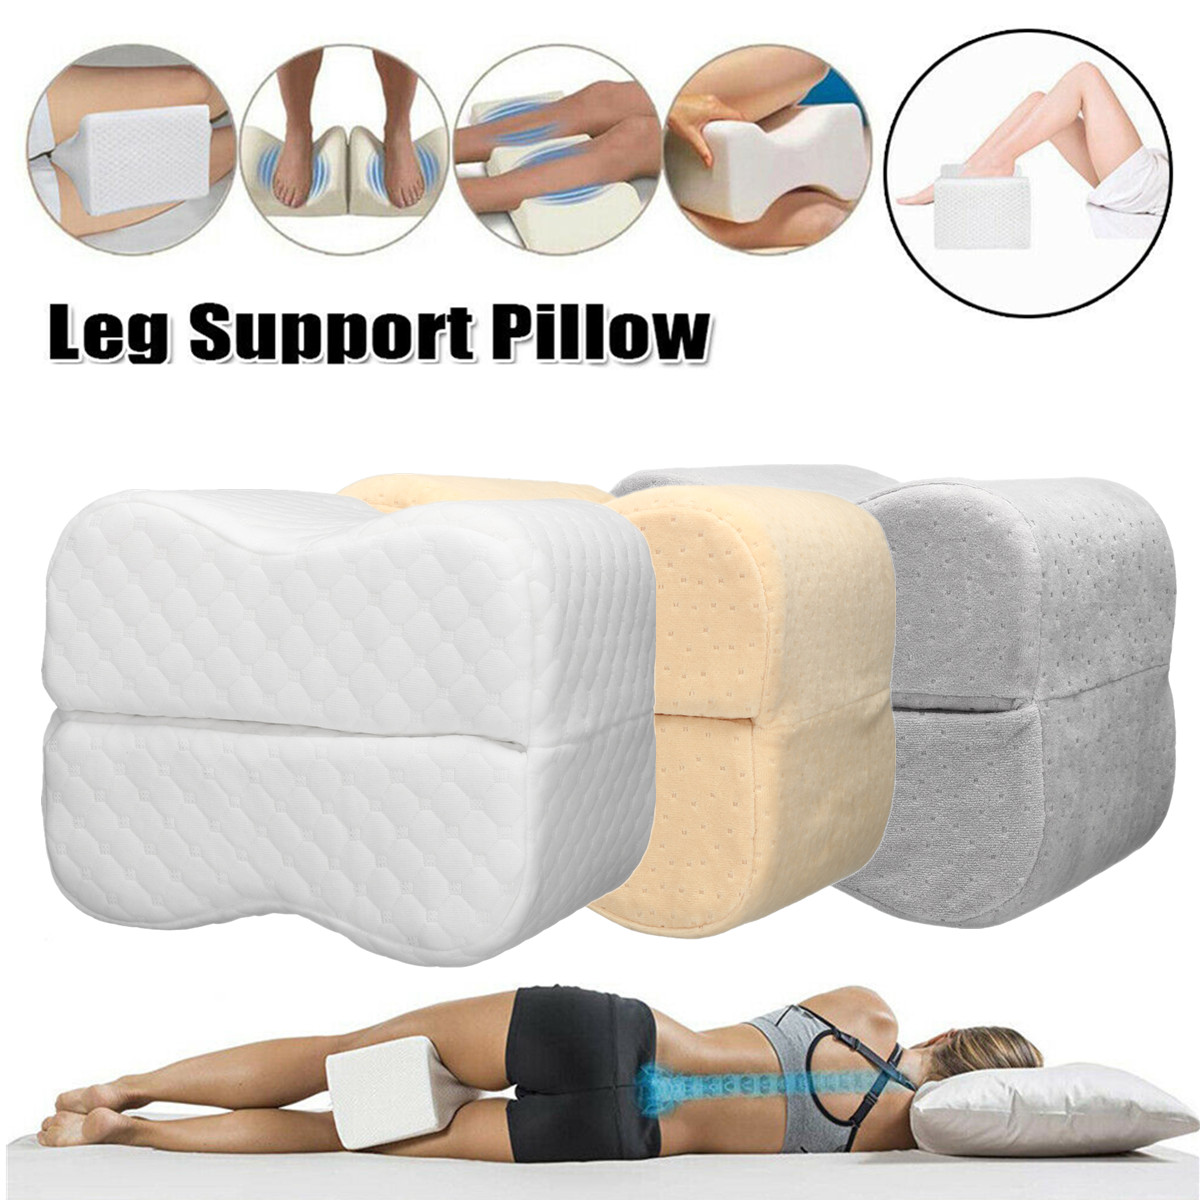 knee pillow for side sleepers memory foam leg pillows spacer cushion for back pain pregnancy support sciatica hip joint surgery pain relief